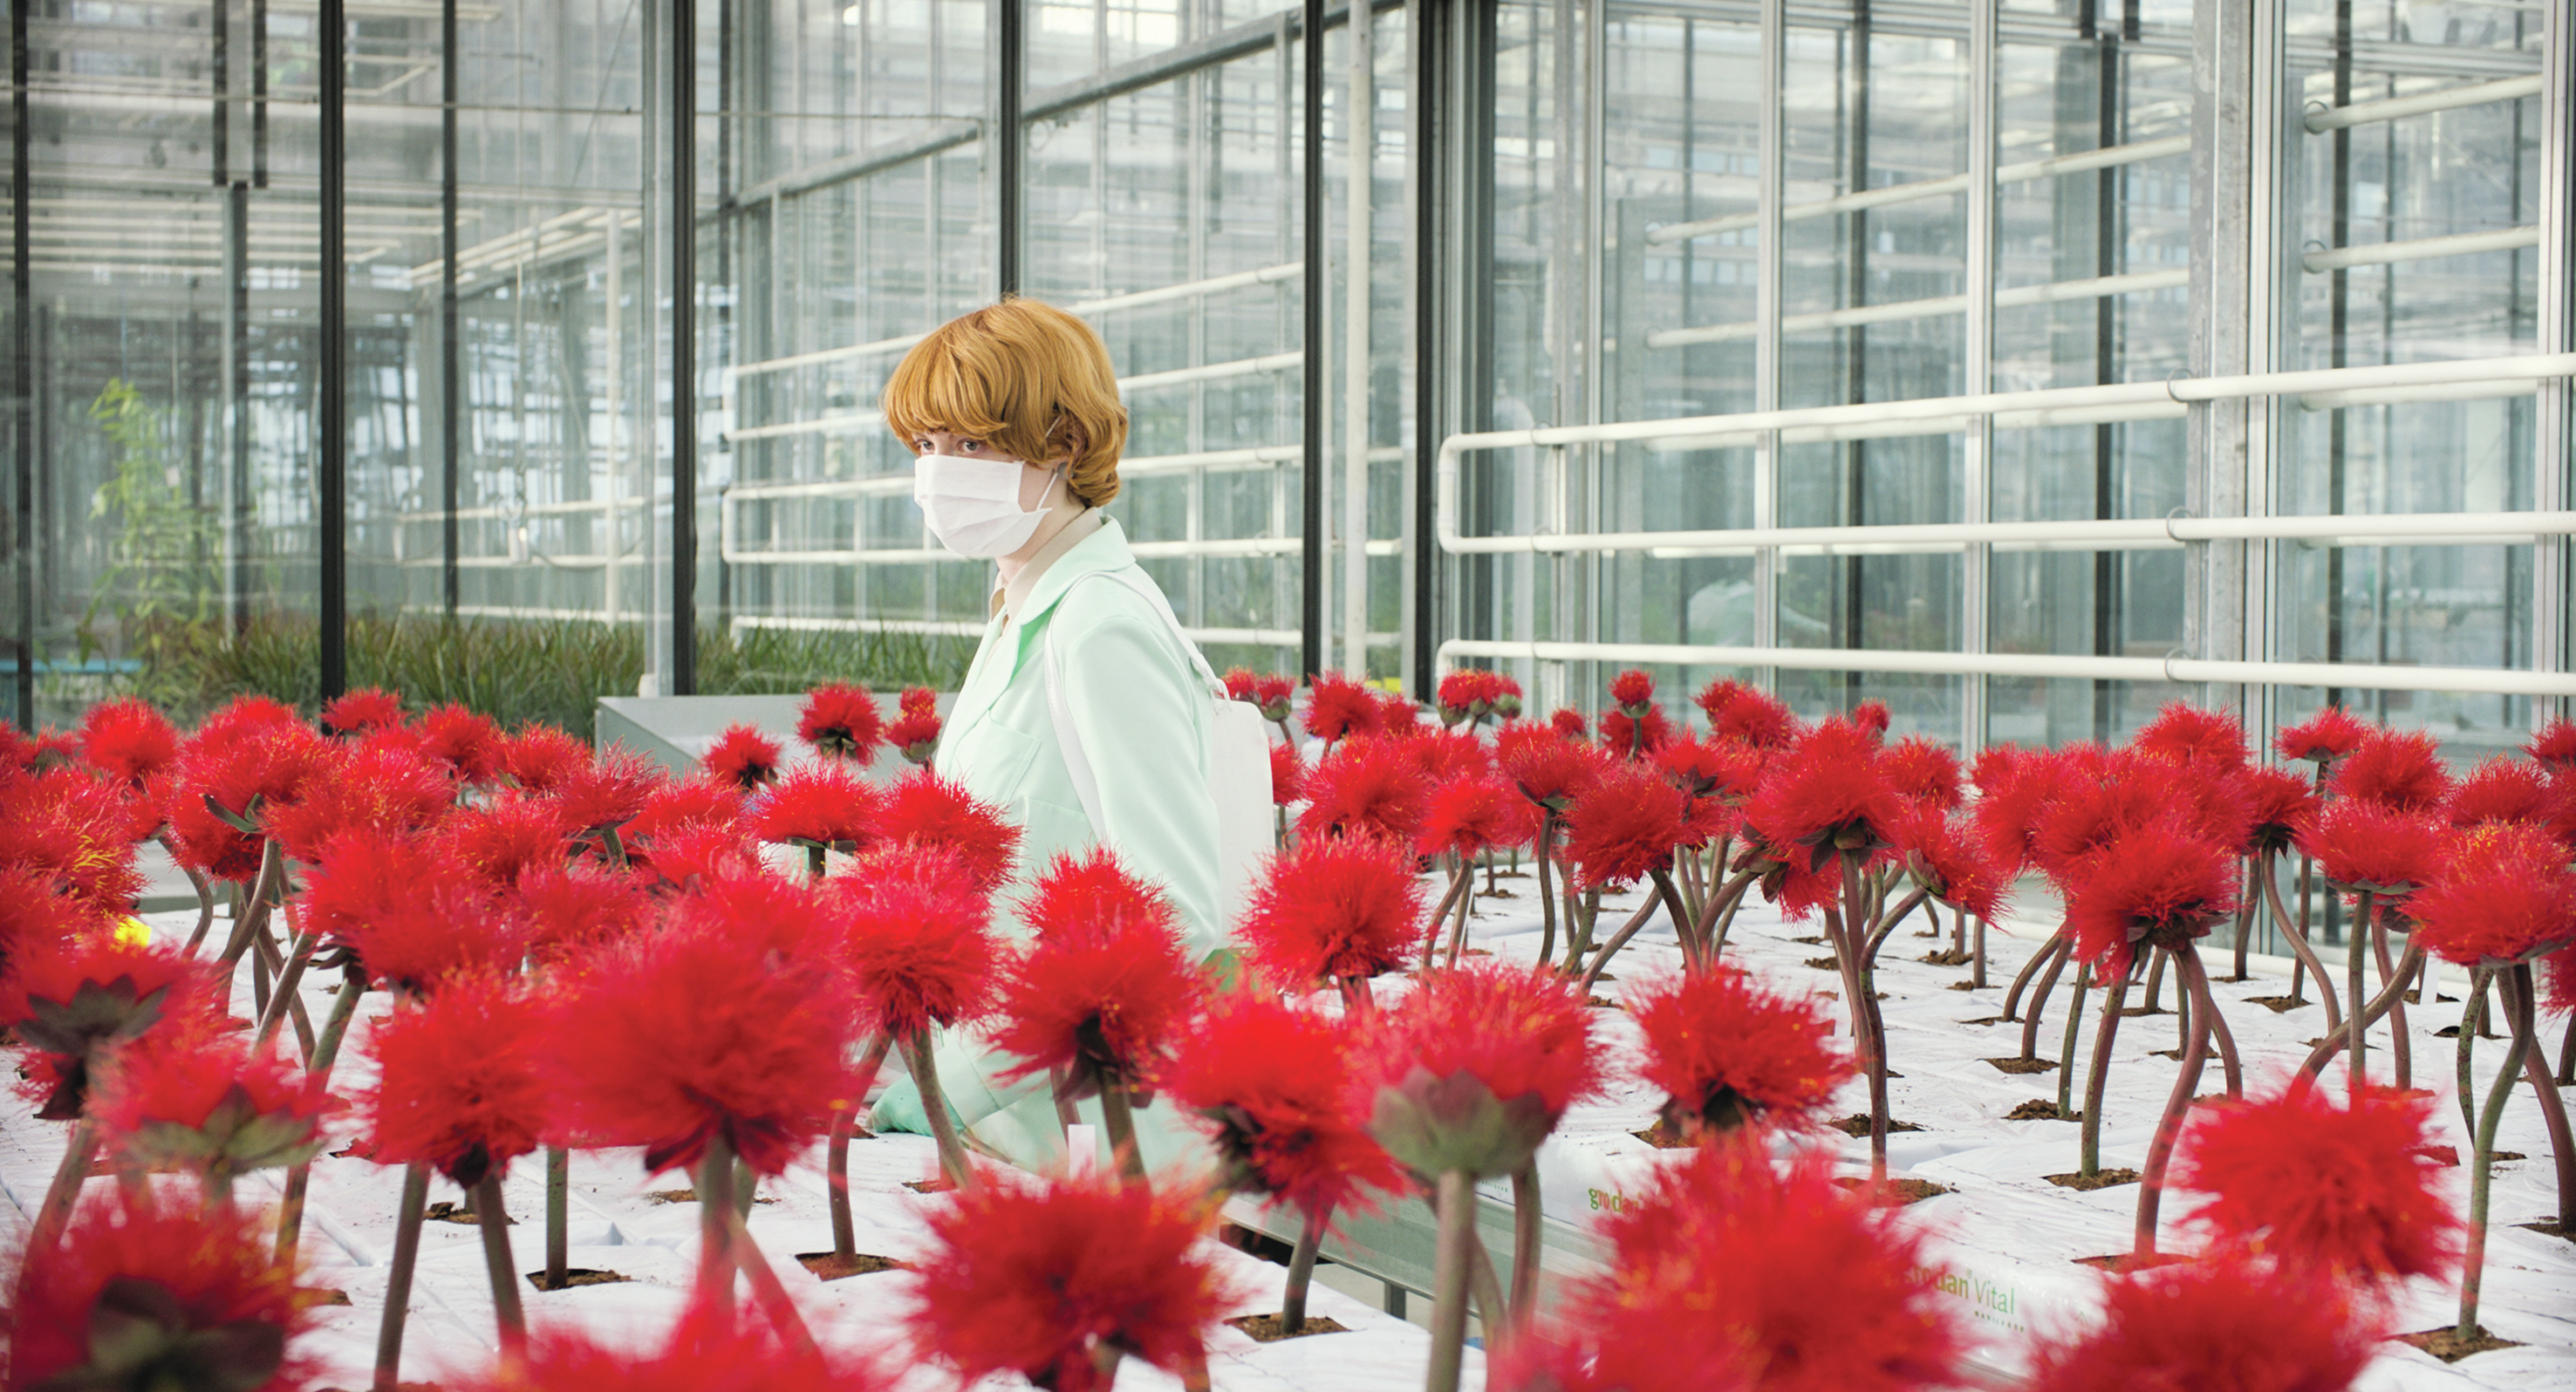 In The Clever 'Little Joe,' Horror Is Horticultural